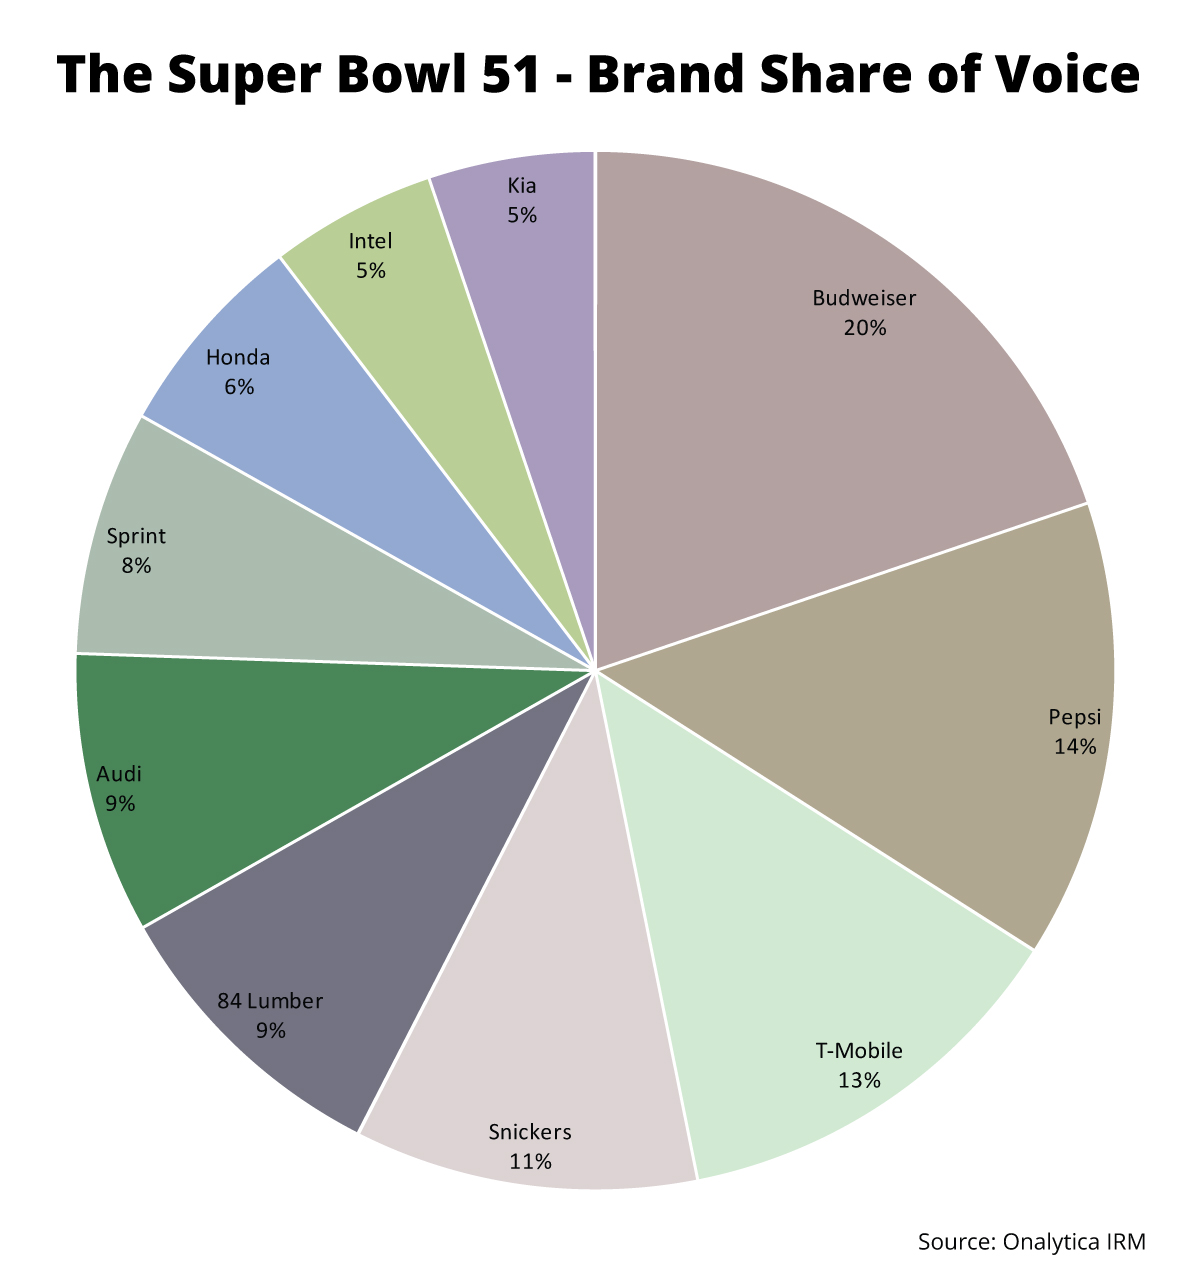 Onalytica - Sponsors at the Super Bowl 51 - Top 100 Influencers and Brands - Brand Share of Voice